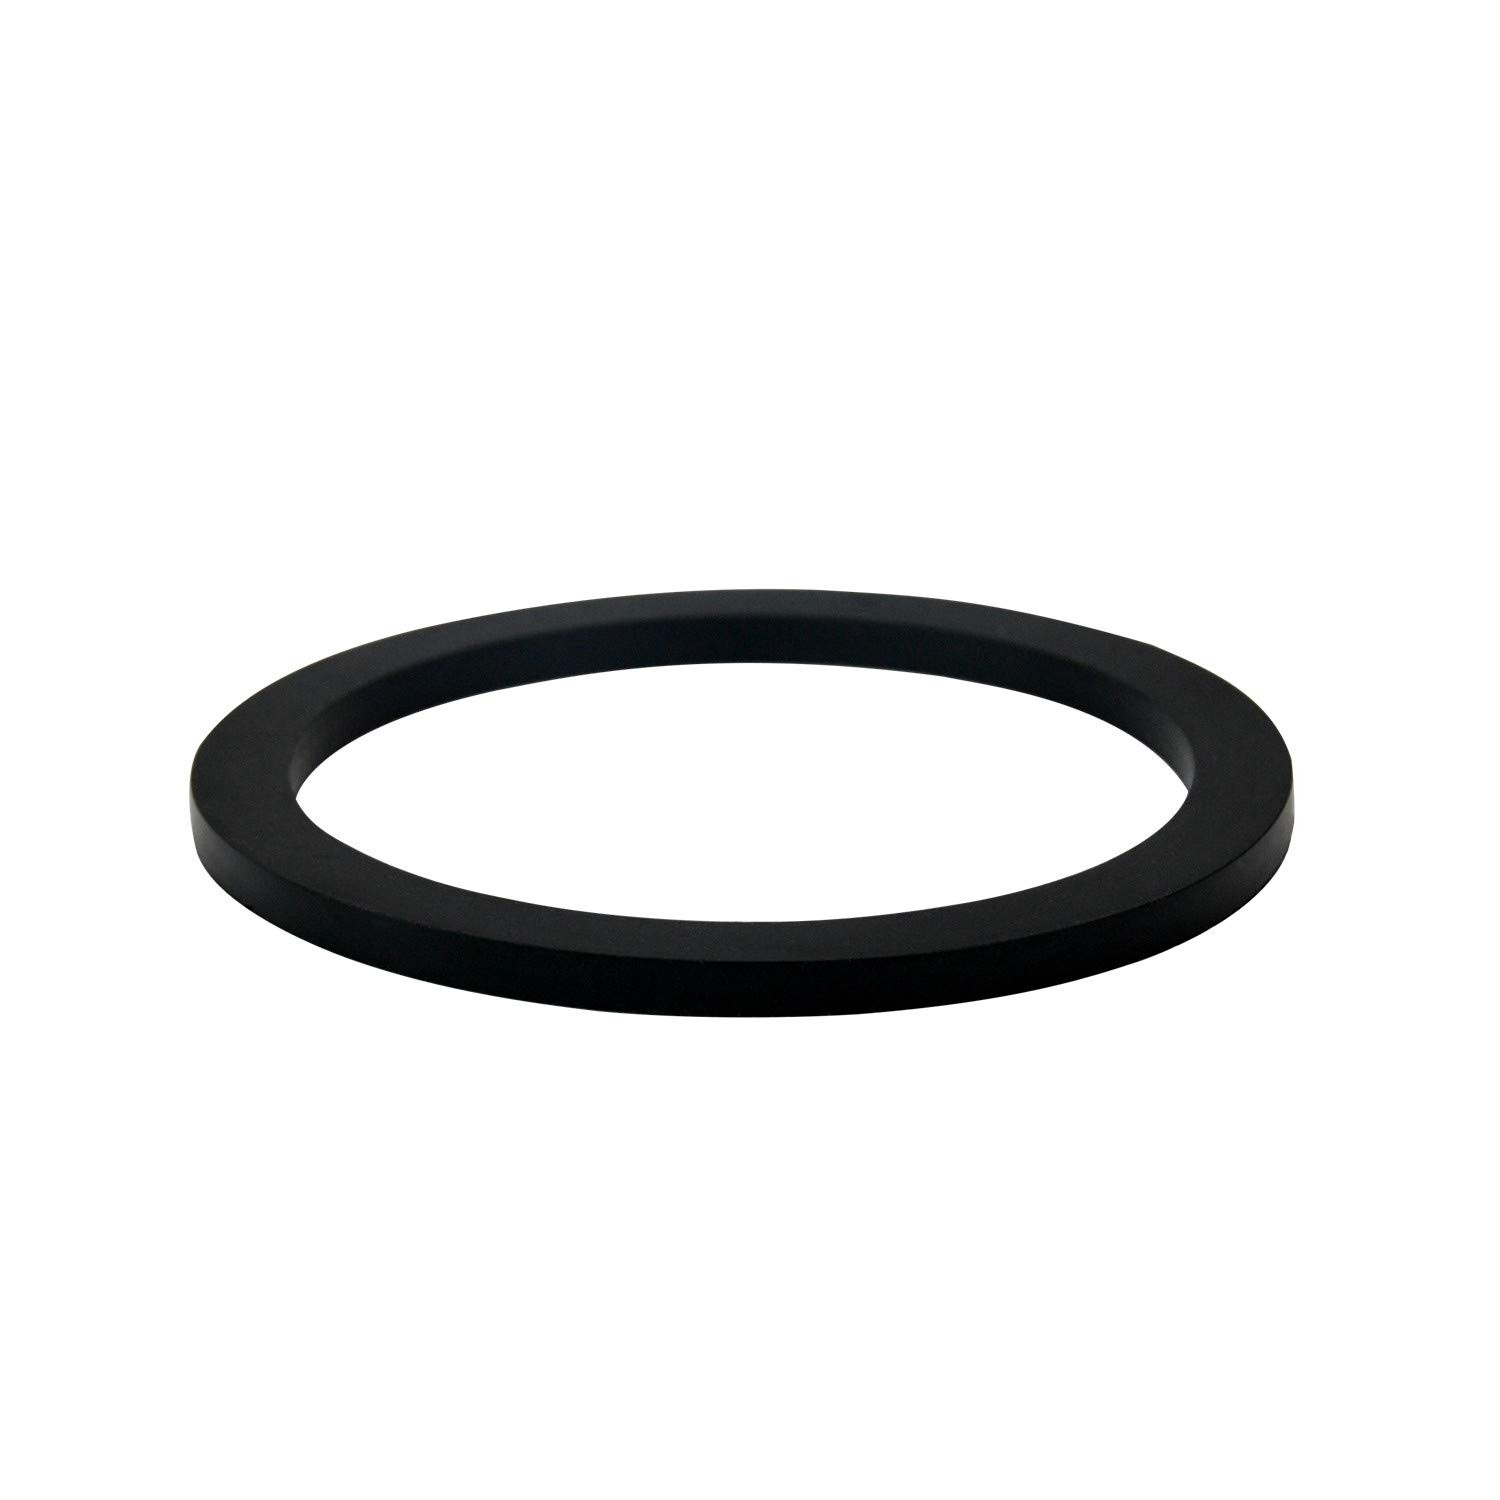 1.5 Camlock Gasket Fitting Cam Lock Hose Seal for Female Coupler 10-Pack Cam Groove Replacement Rubber Washer